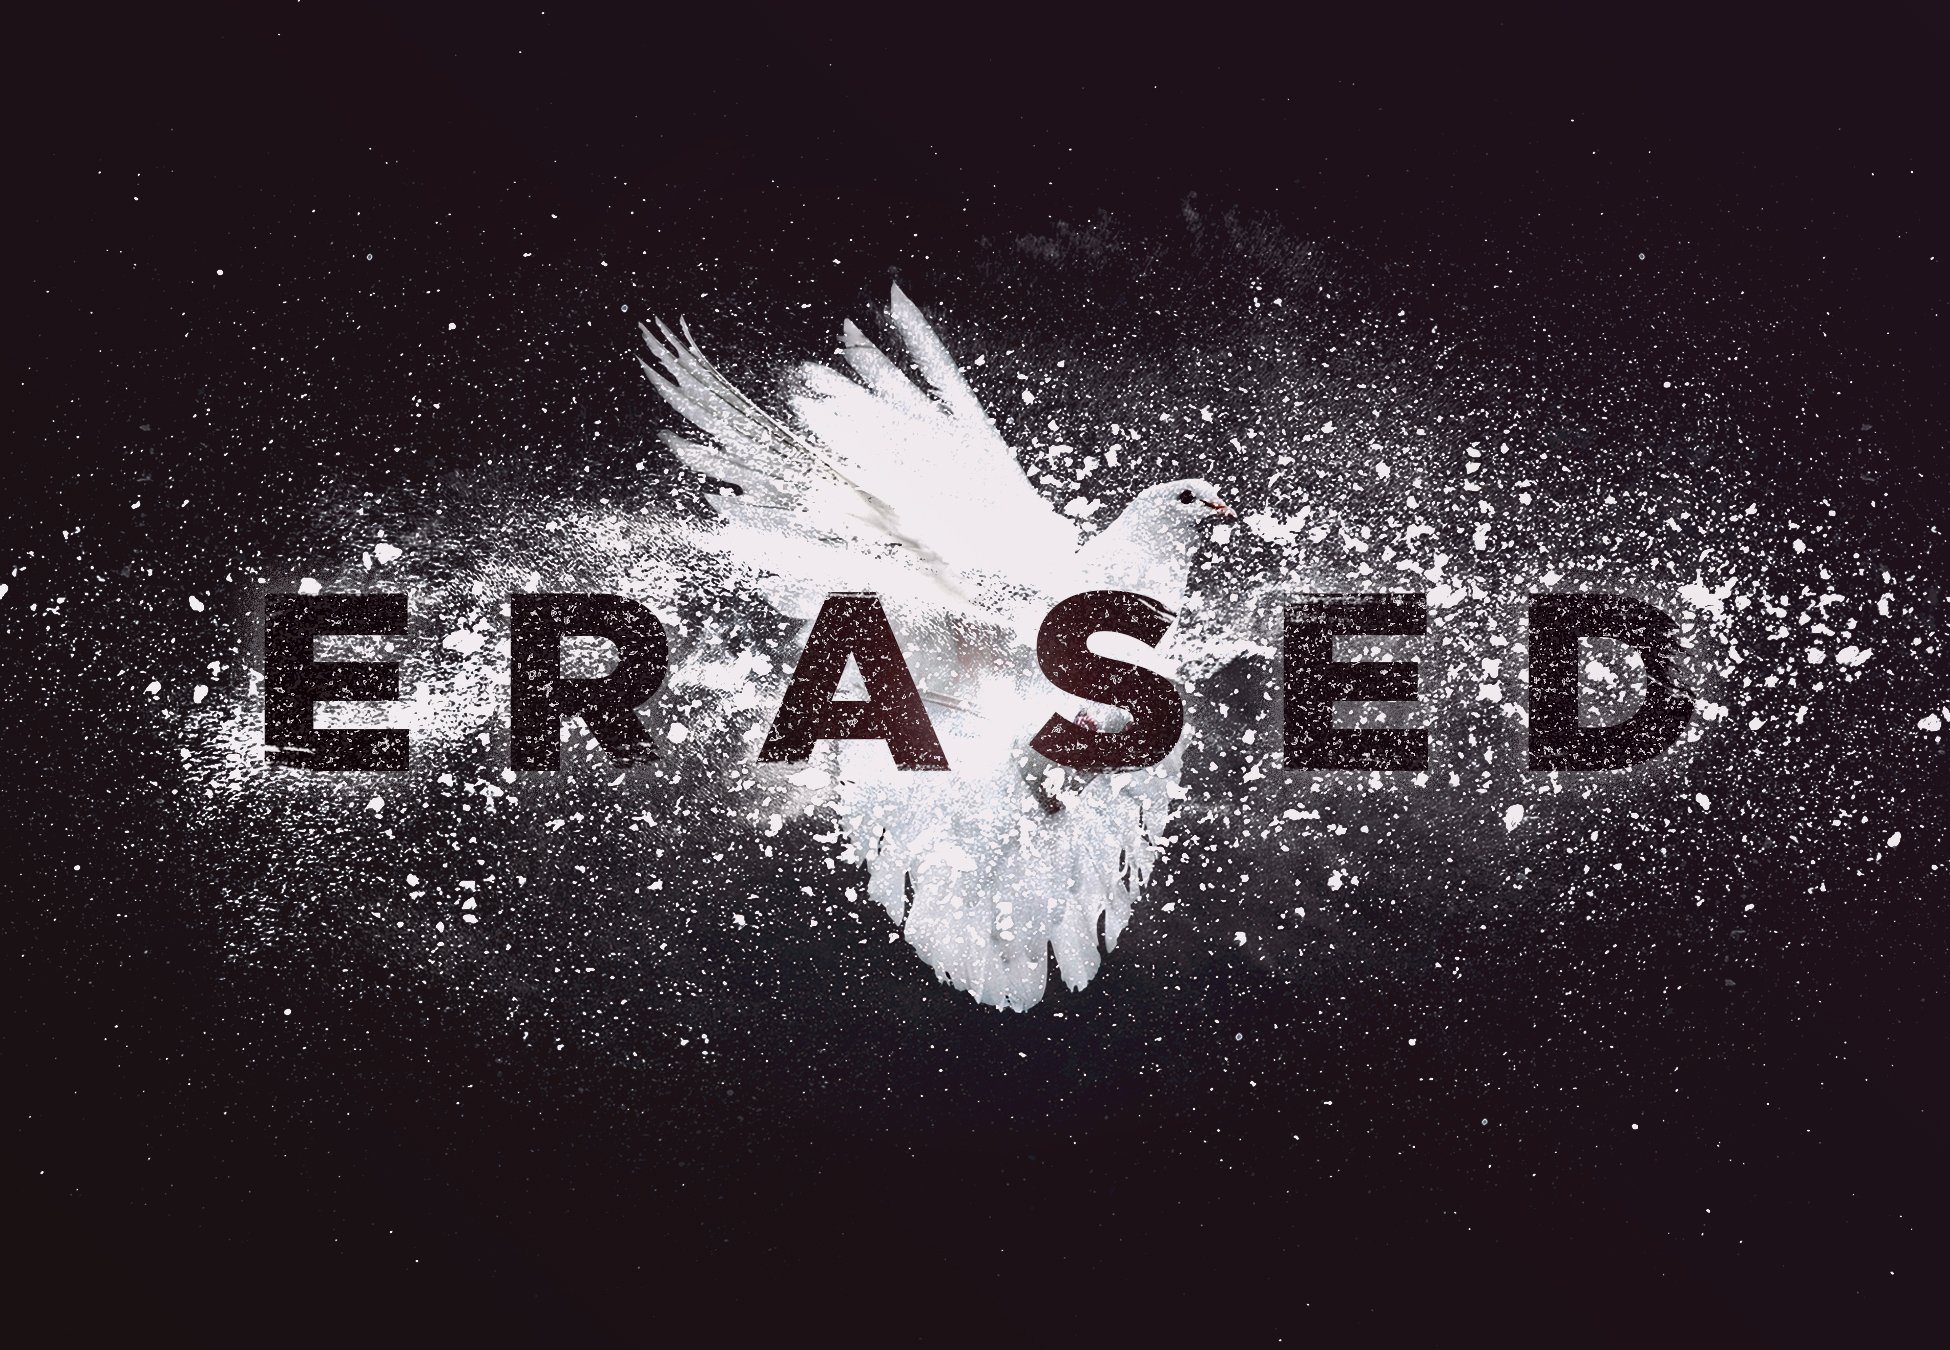 Erased_Postcard.jpg